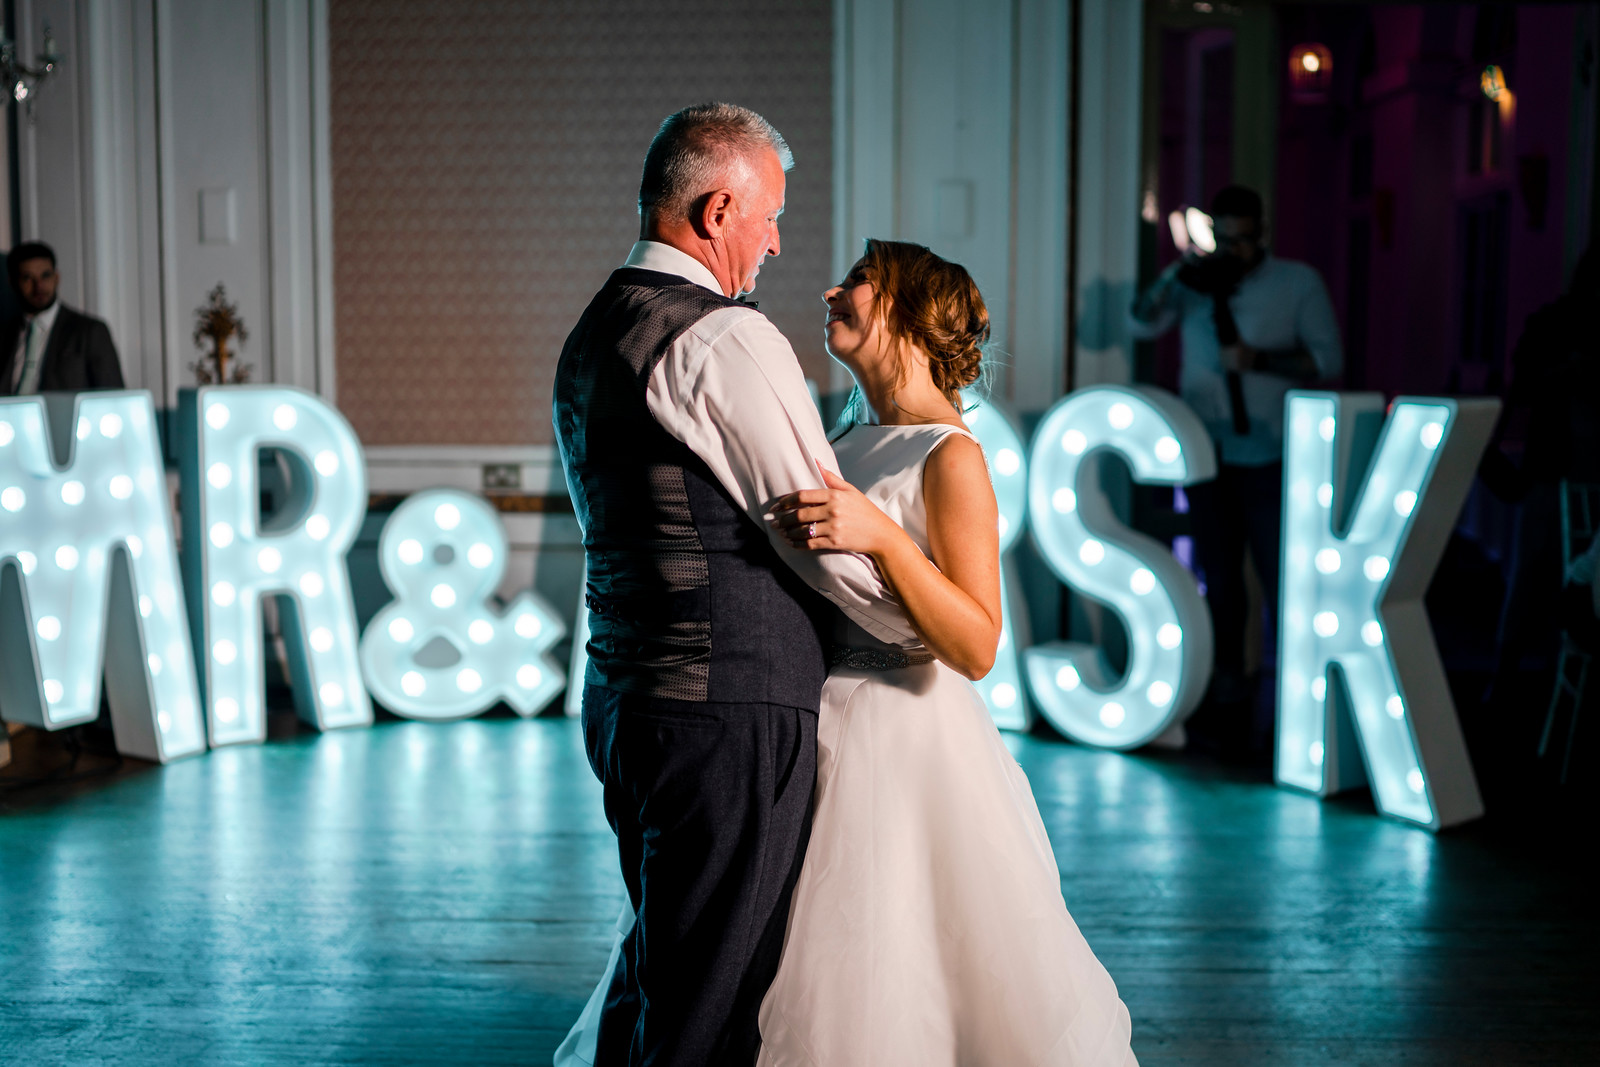 Father and bride look at each other as they dance together